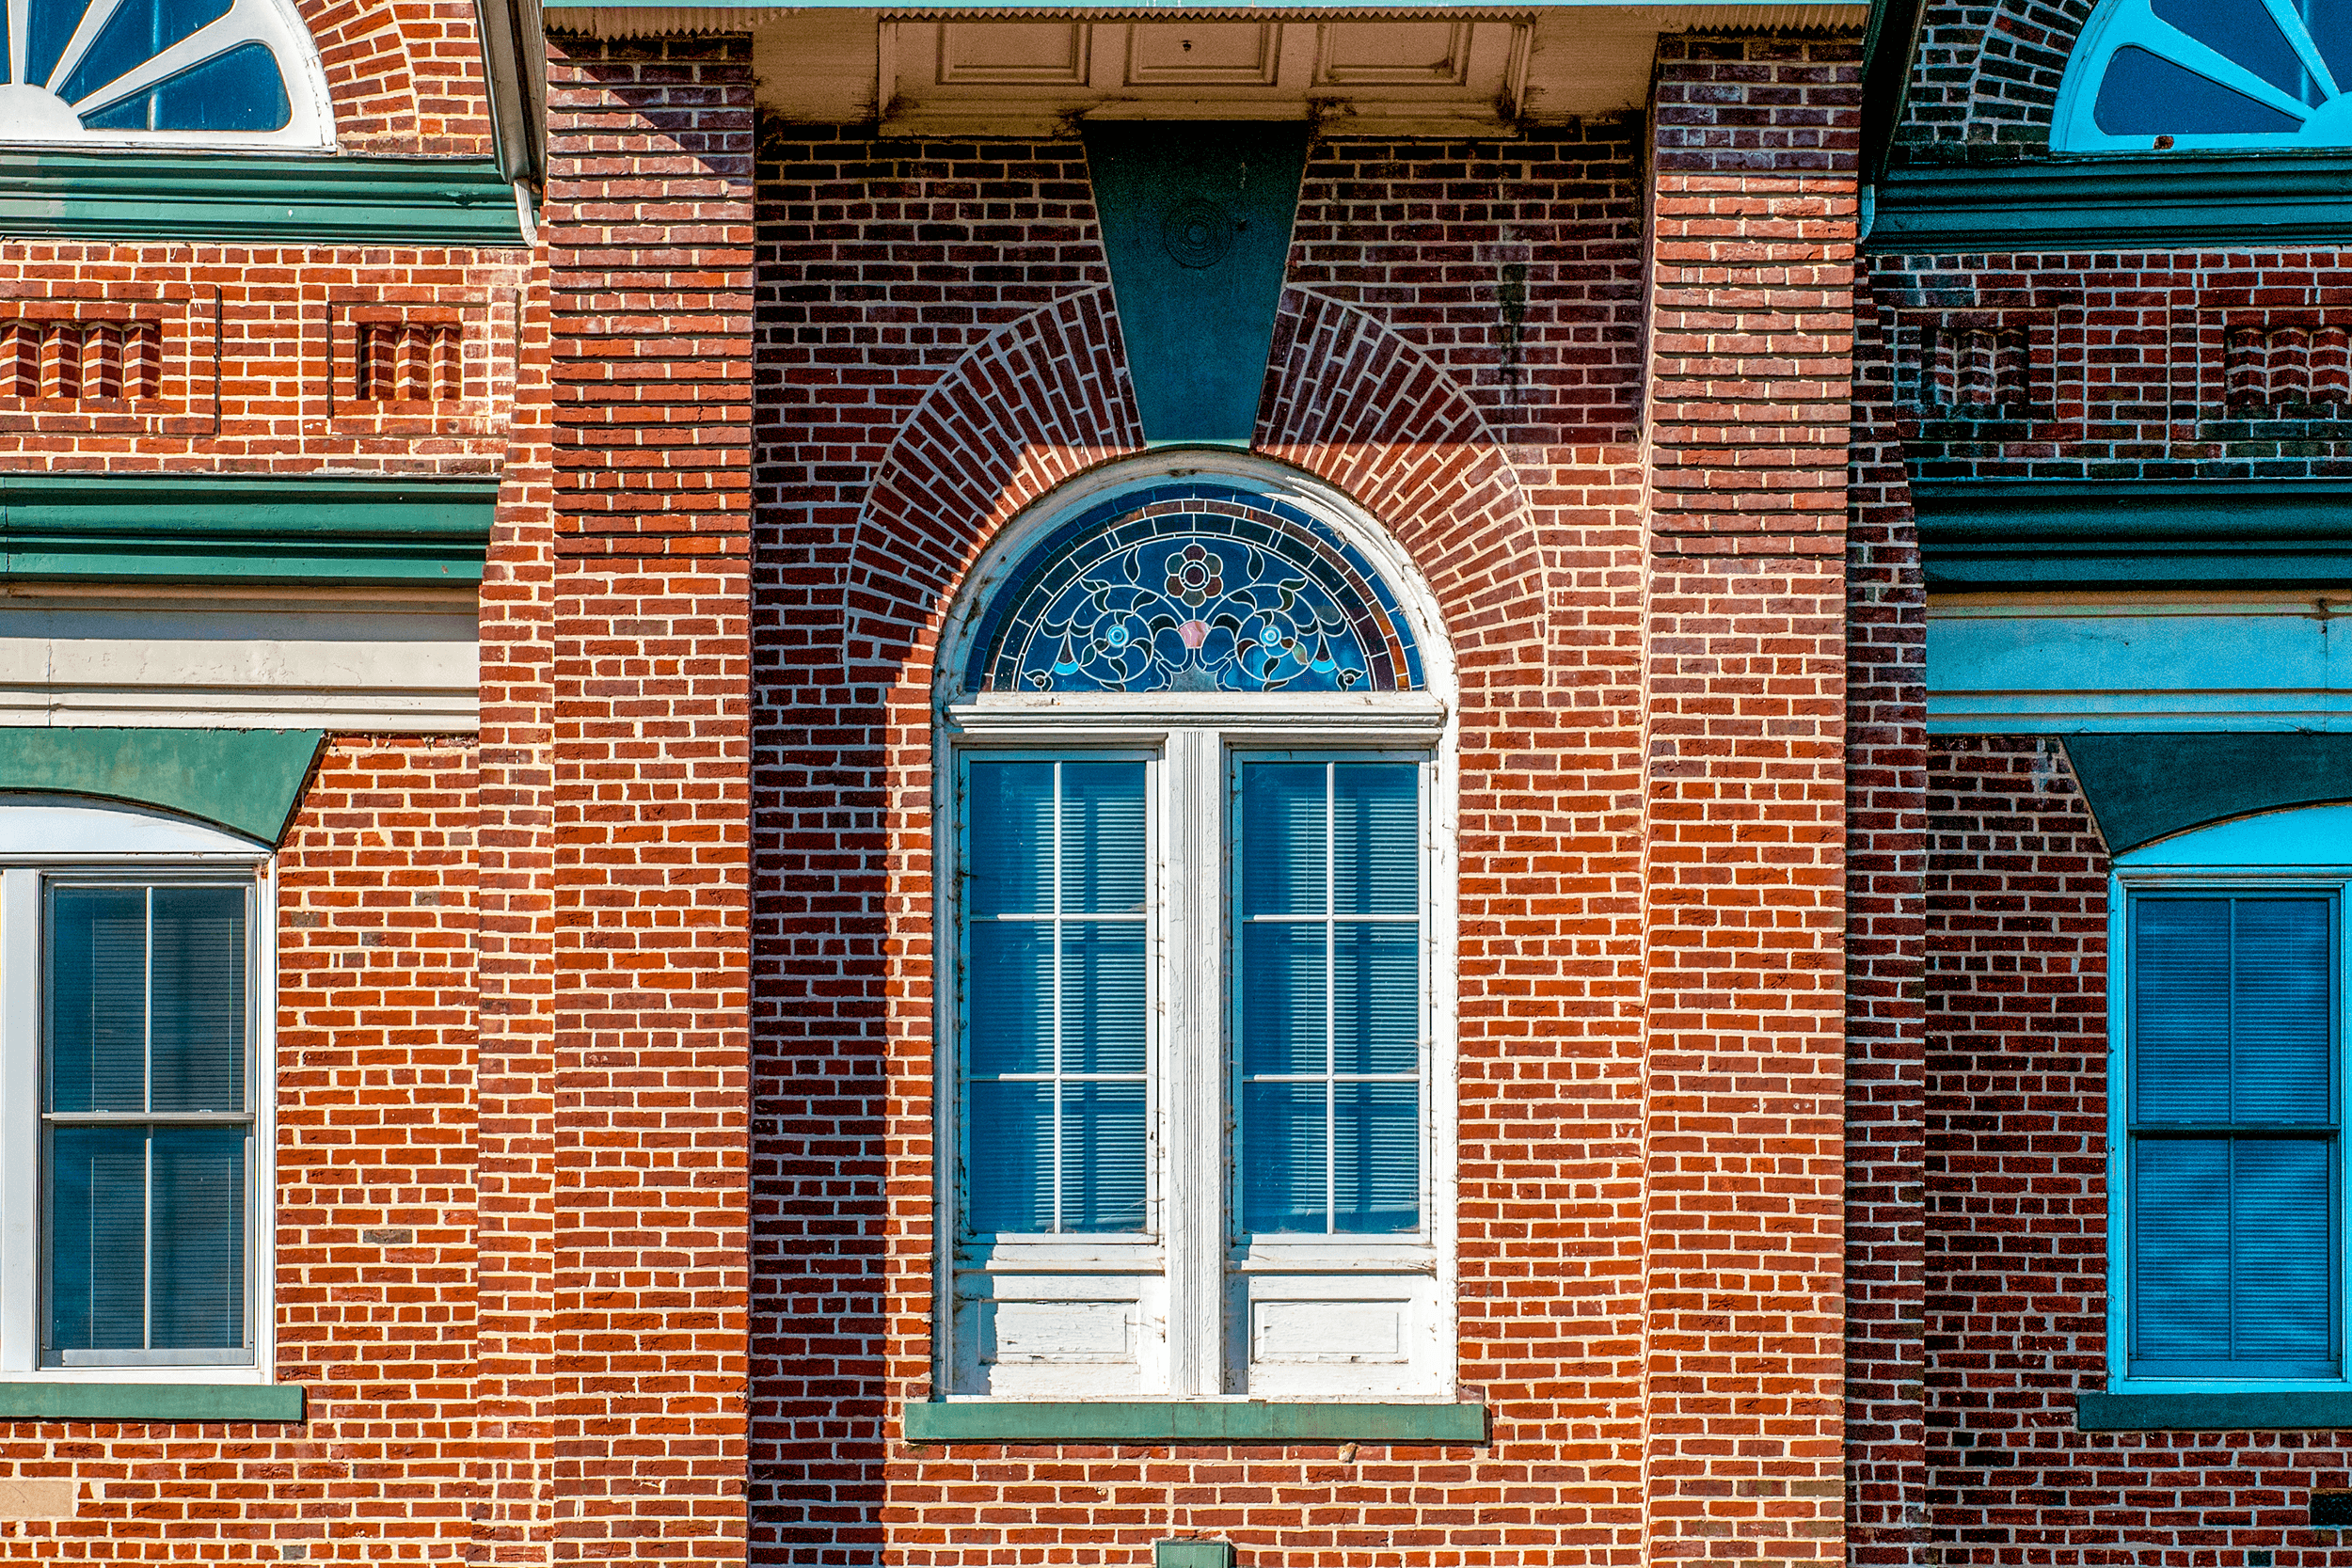 Small details. Here a false door with a stained glass fanlight under the balcony at the clock tower.